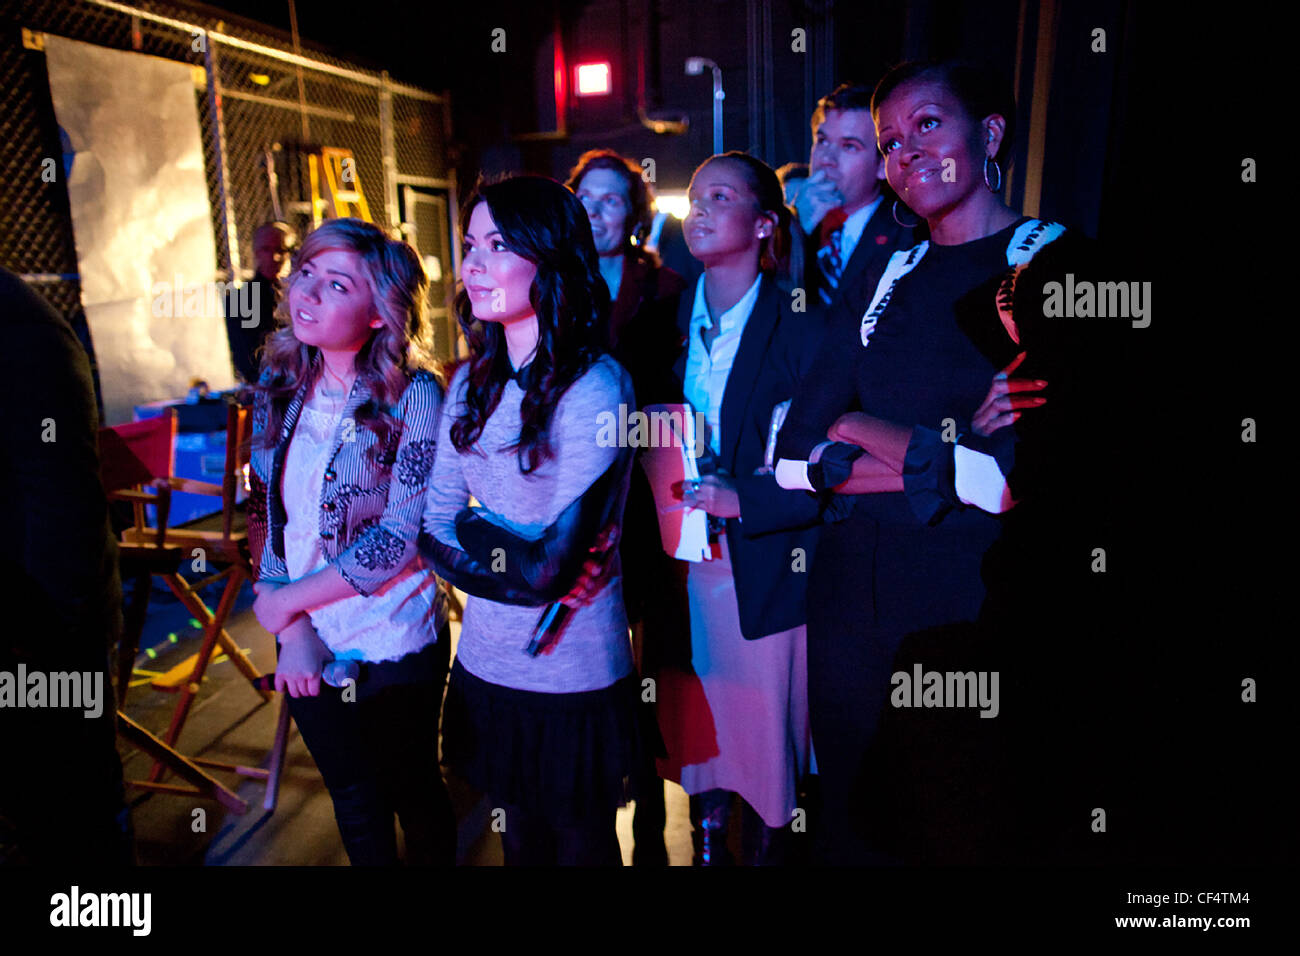 First Lady Michelle Obama watches a performance backstage with iCarly cast members Jennette McCurdy, left, and Miranda - Stock Image